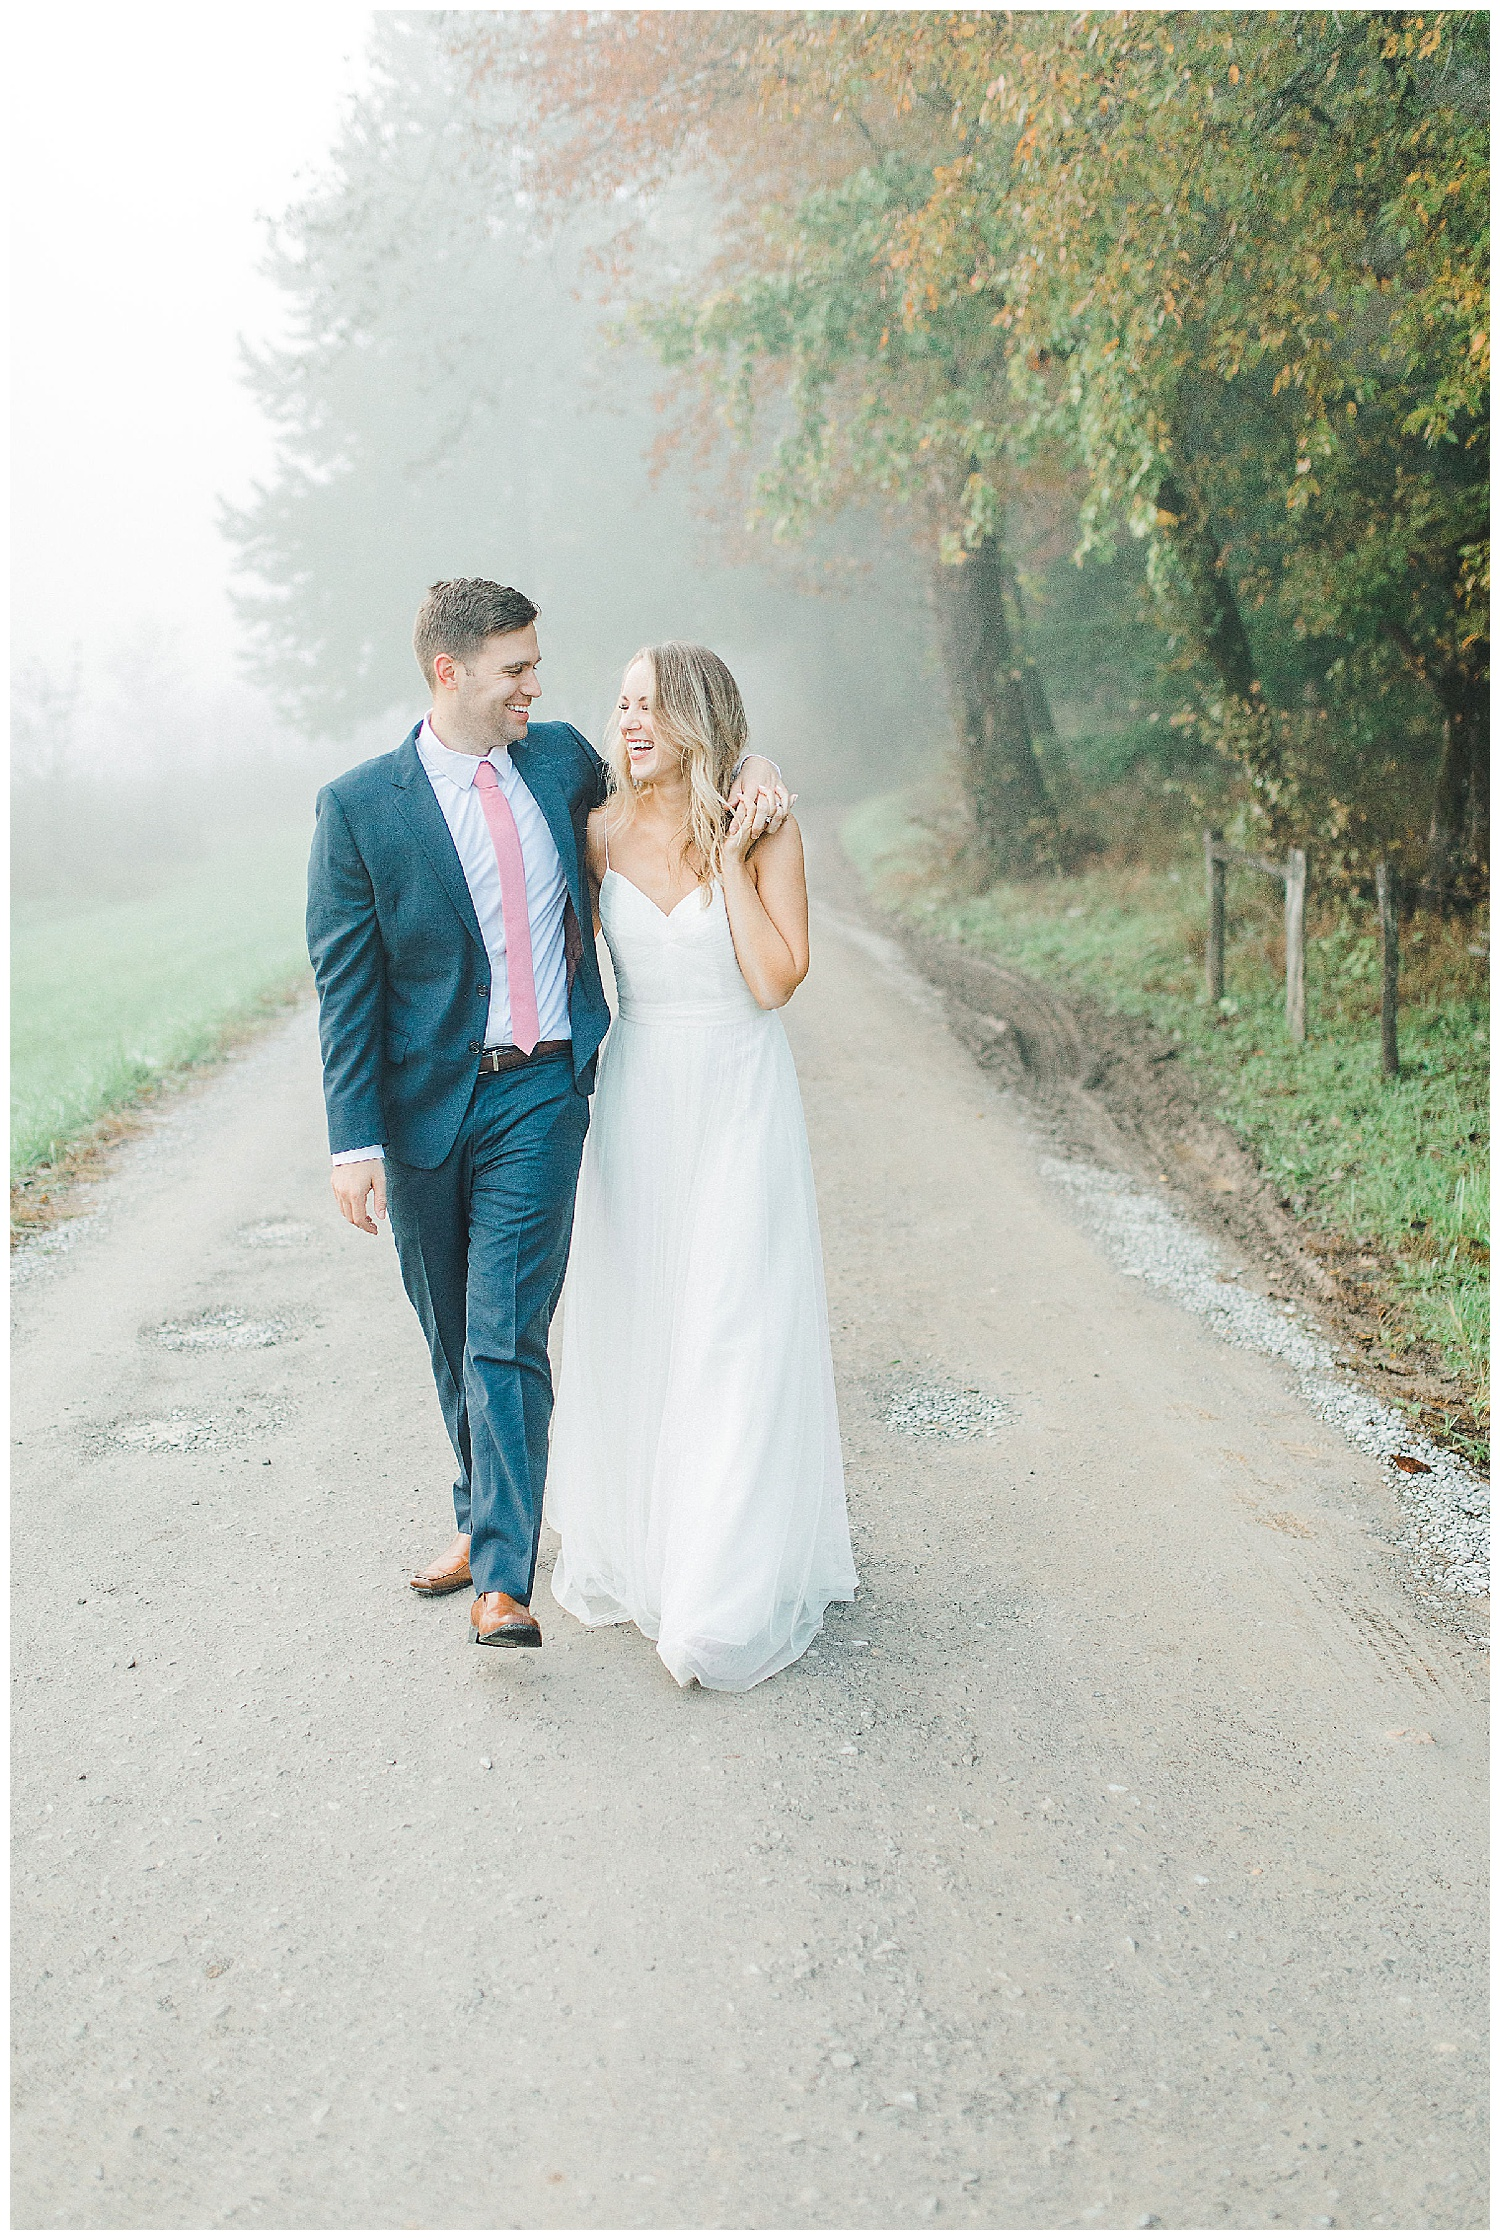 Emma Rose Company recently got to travel all the way to Nashville to photograph the most beautiful post-wedding bride and groom portraits in the Great Smoky Mountains with a gorgeous couple! Nashville wedding inspiration at it's finest._0021.jpg